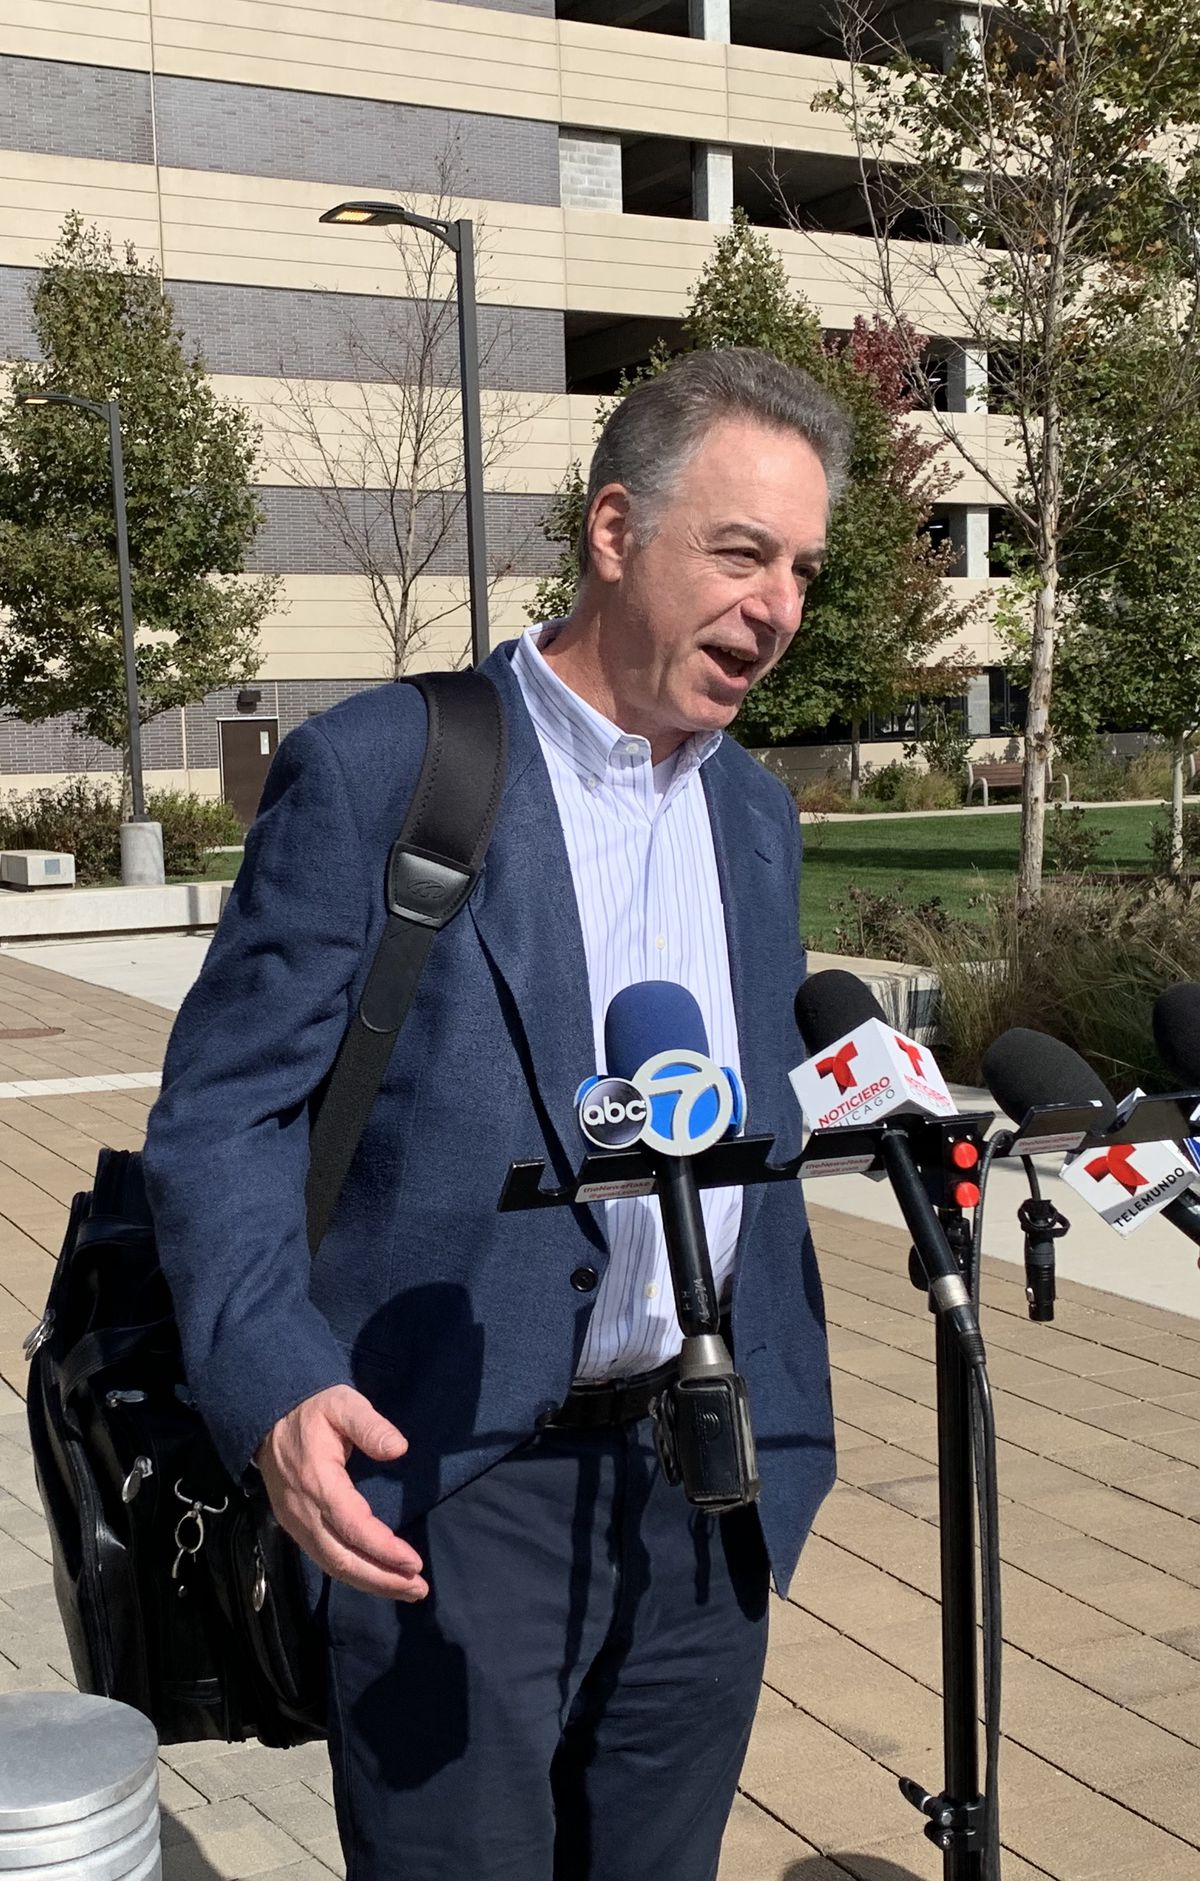 """CTU General Counsel Robert Bloch said the union and the city were """"working off the same page now"""" before heading into contract negotiations on Saturday."""